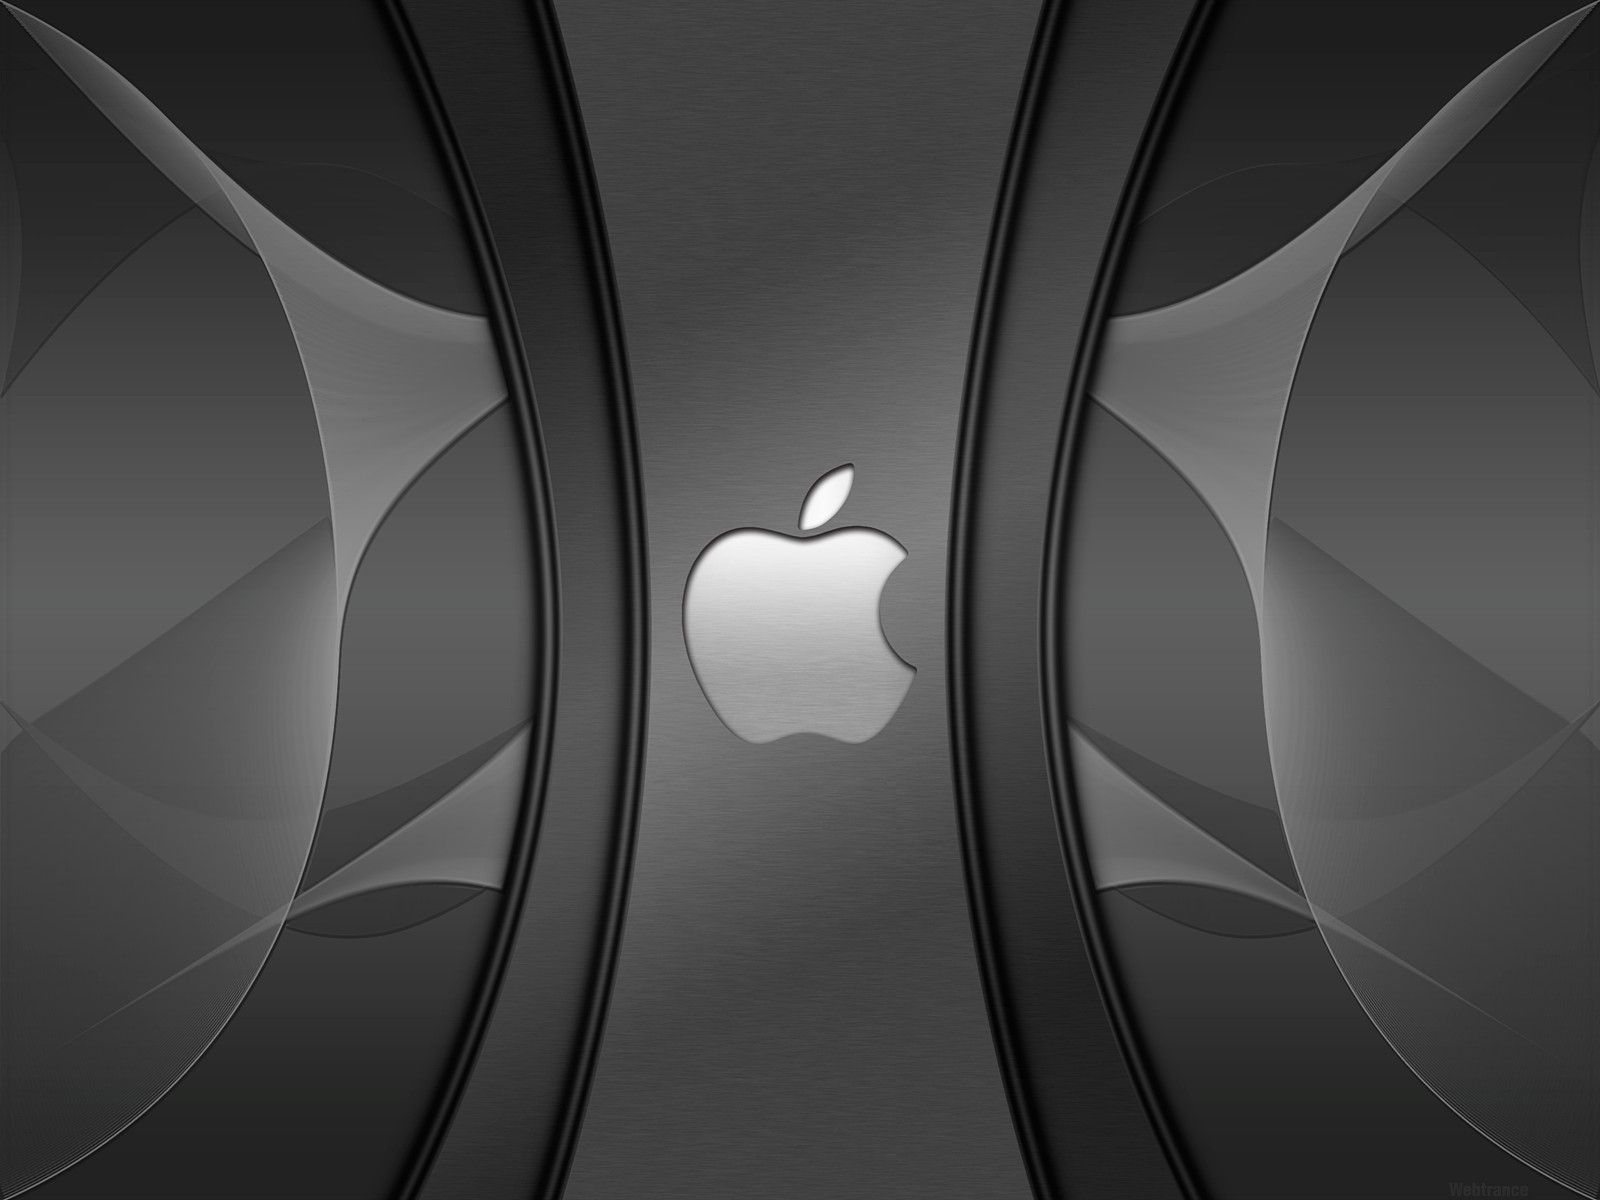 cool apple logo wallpaper #23